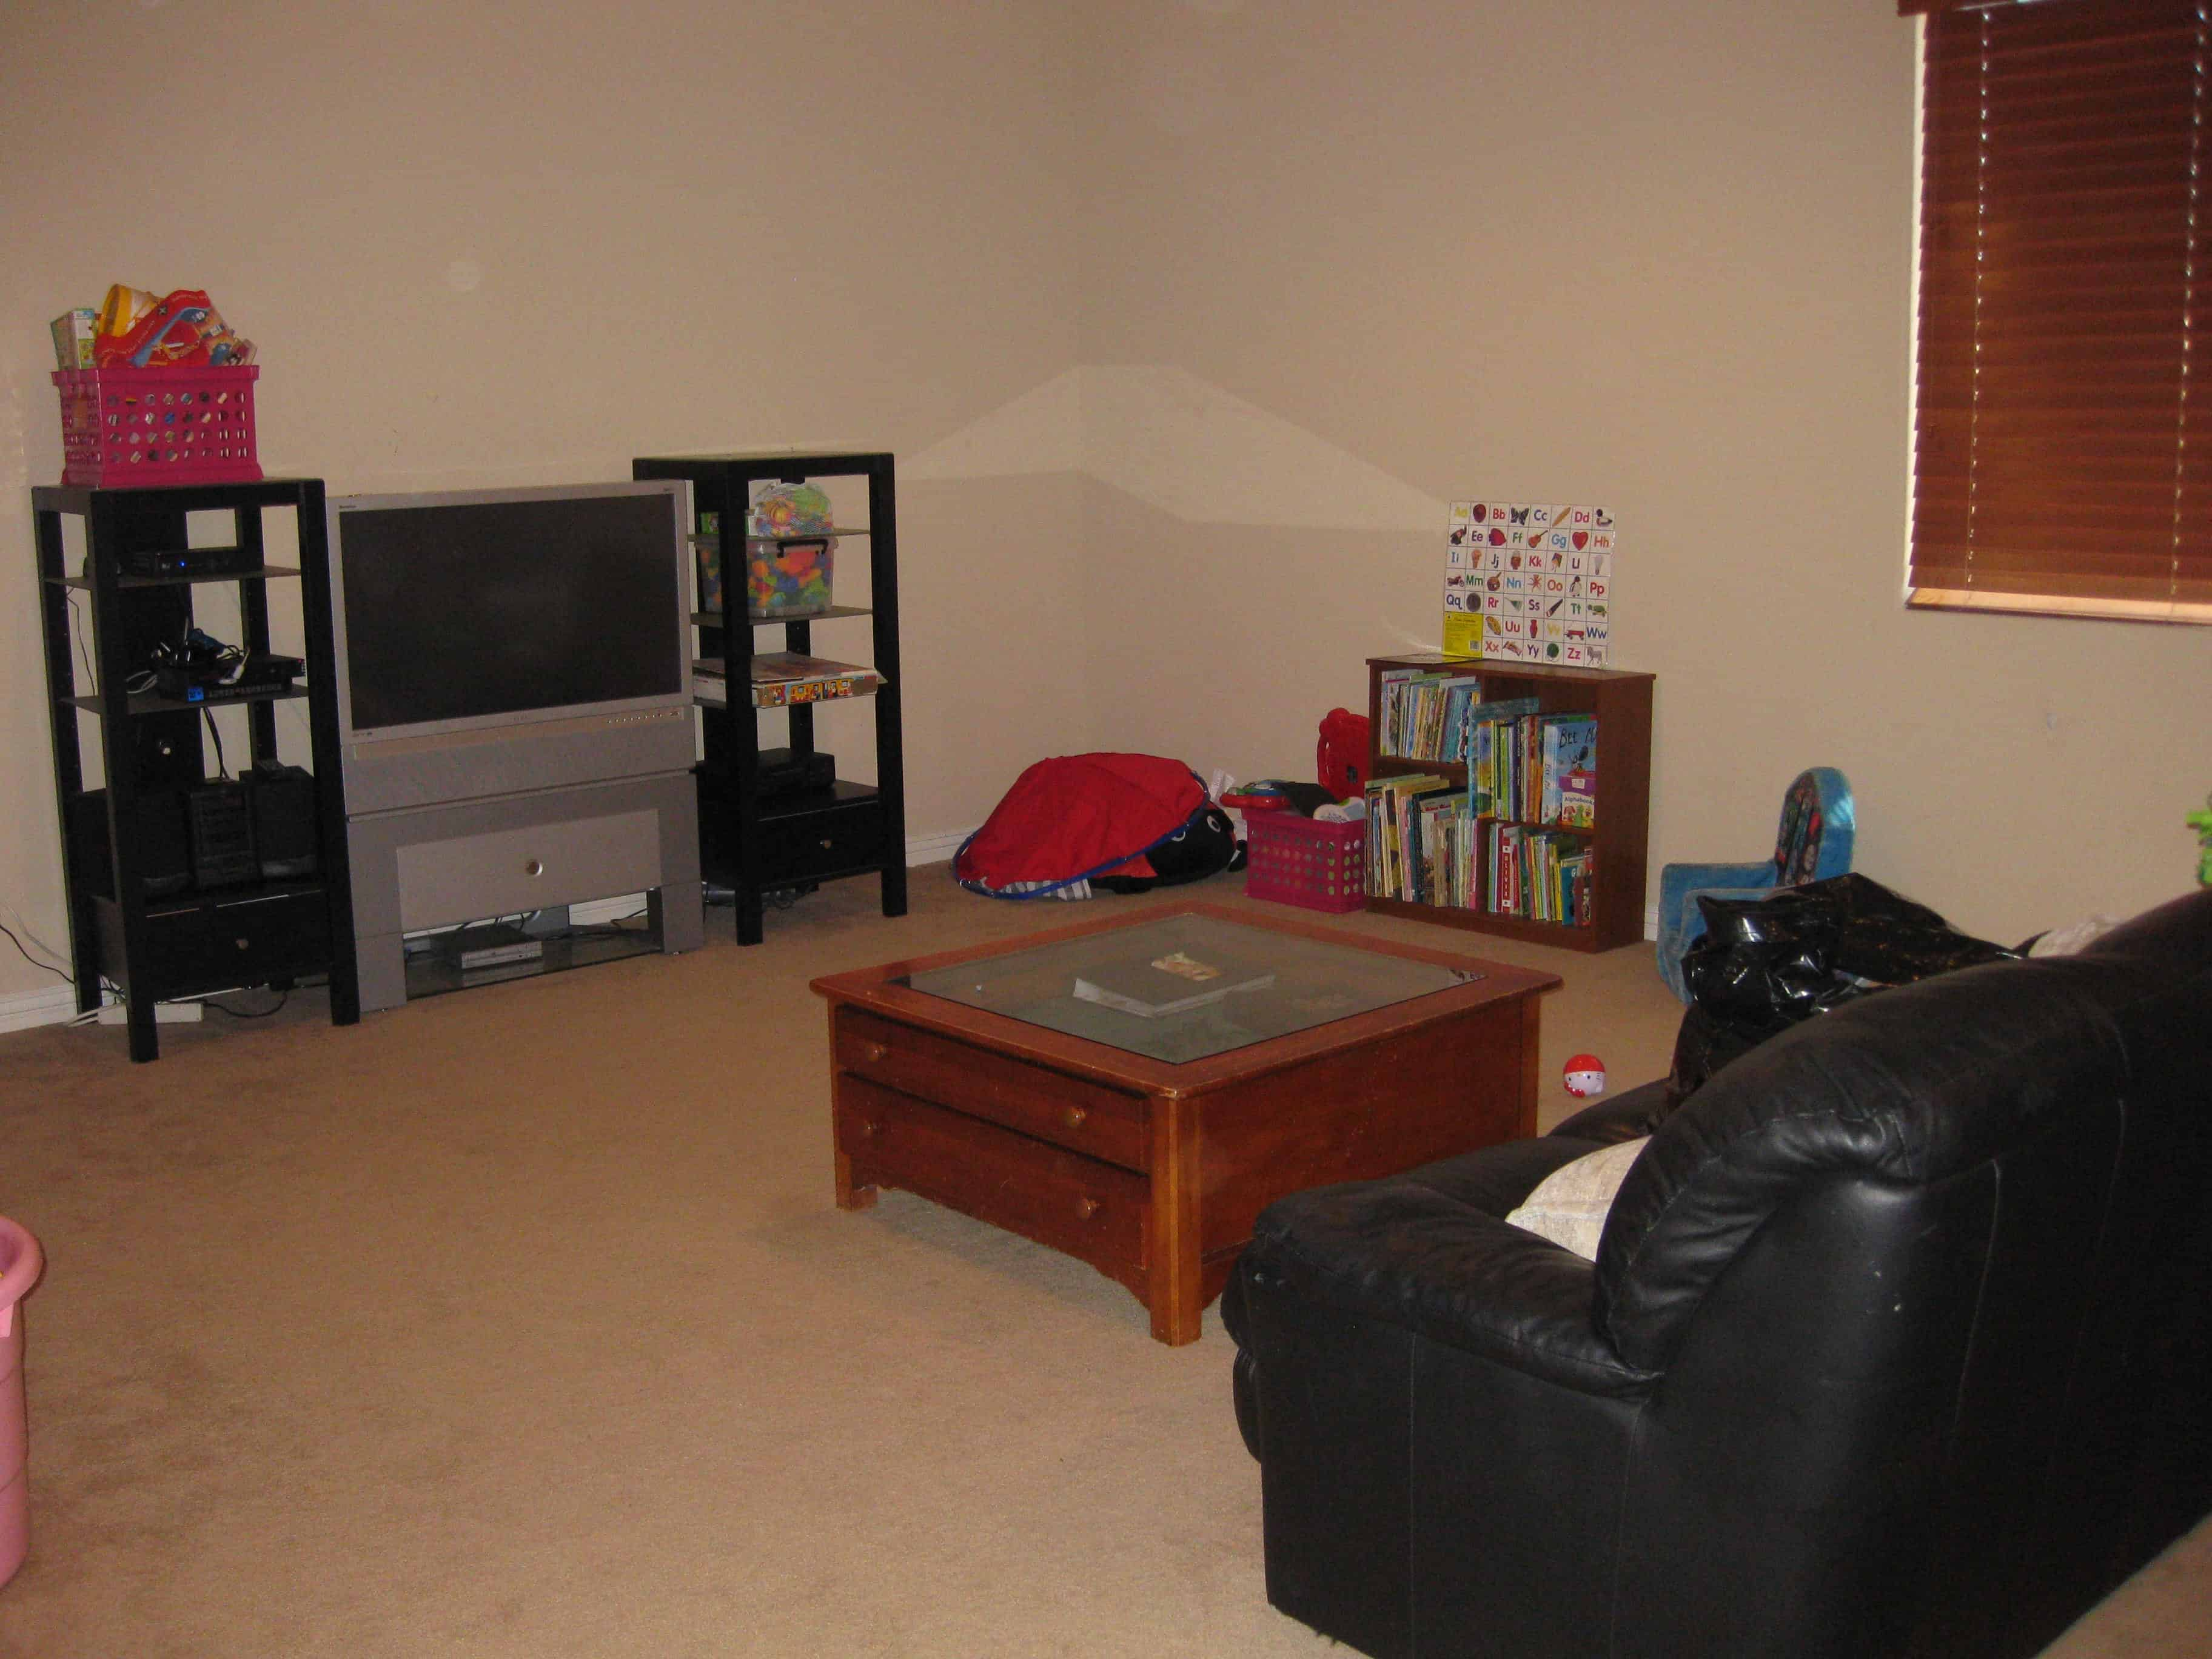 Organized Children's Playroom - After